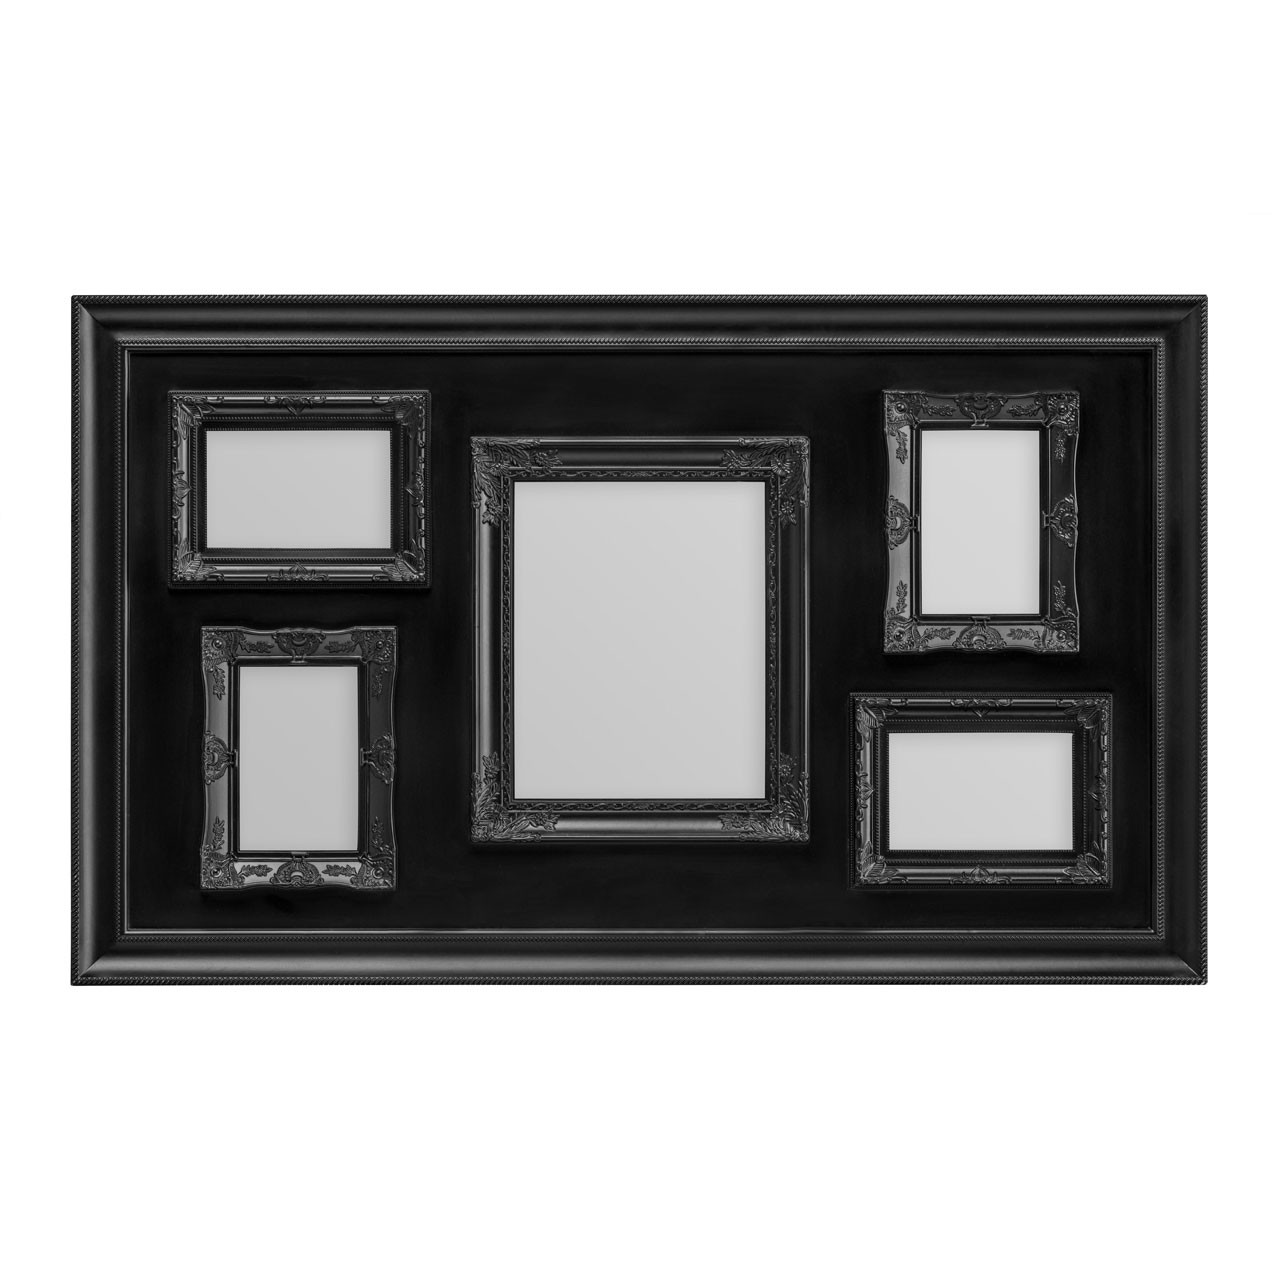 Prime Furnishing 5 Photo Plastic Photo Frame - Black